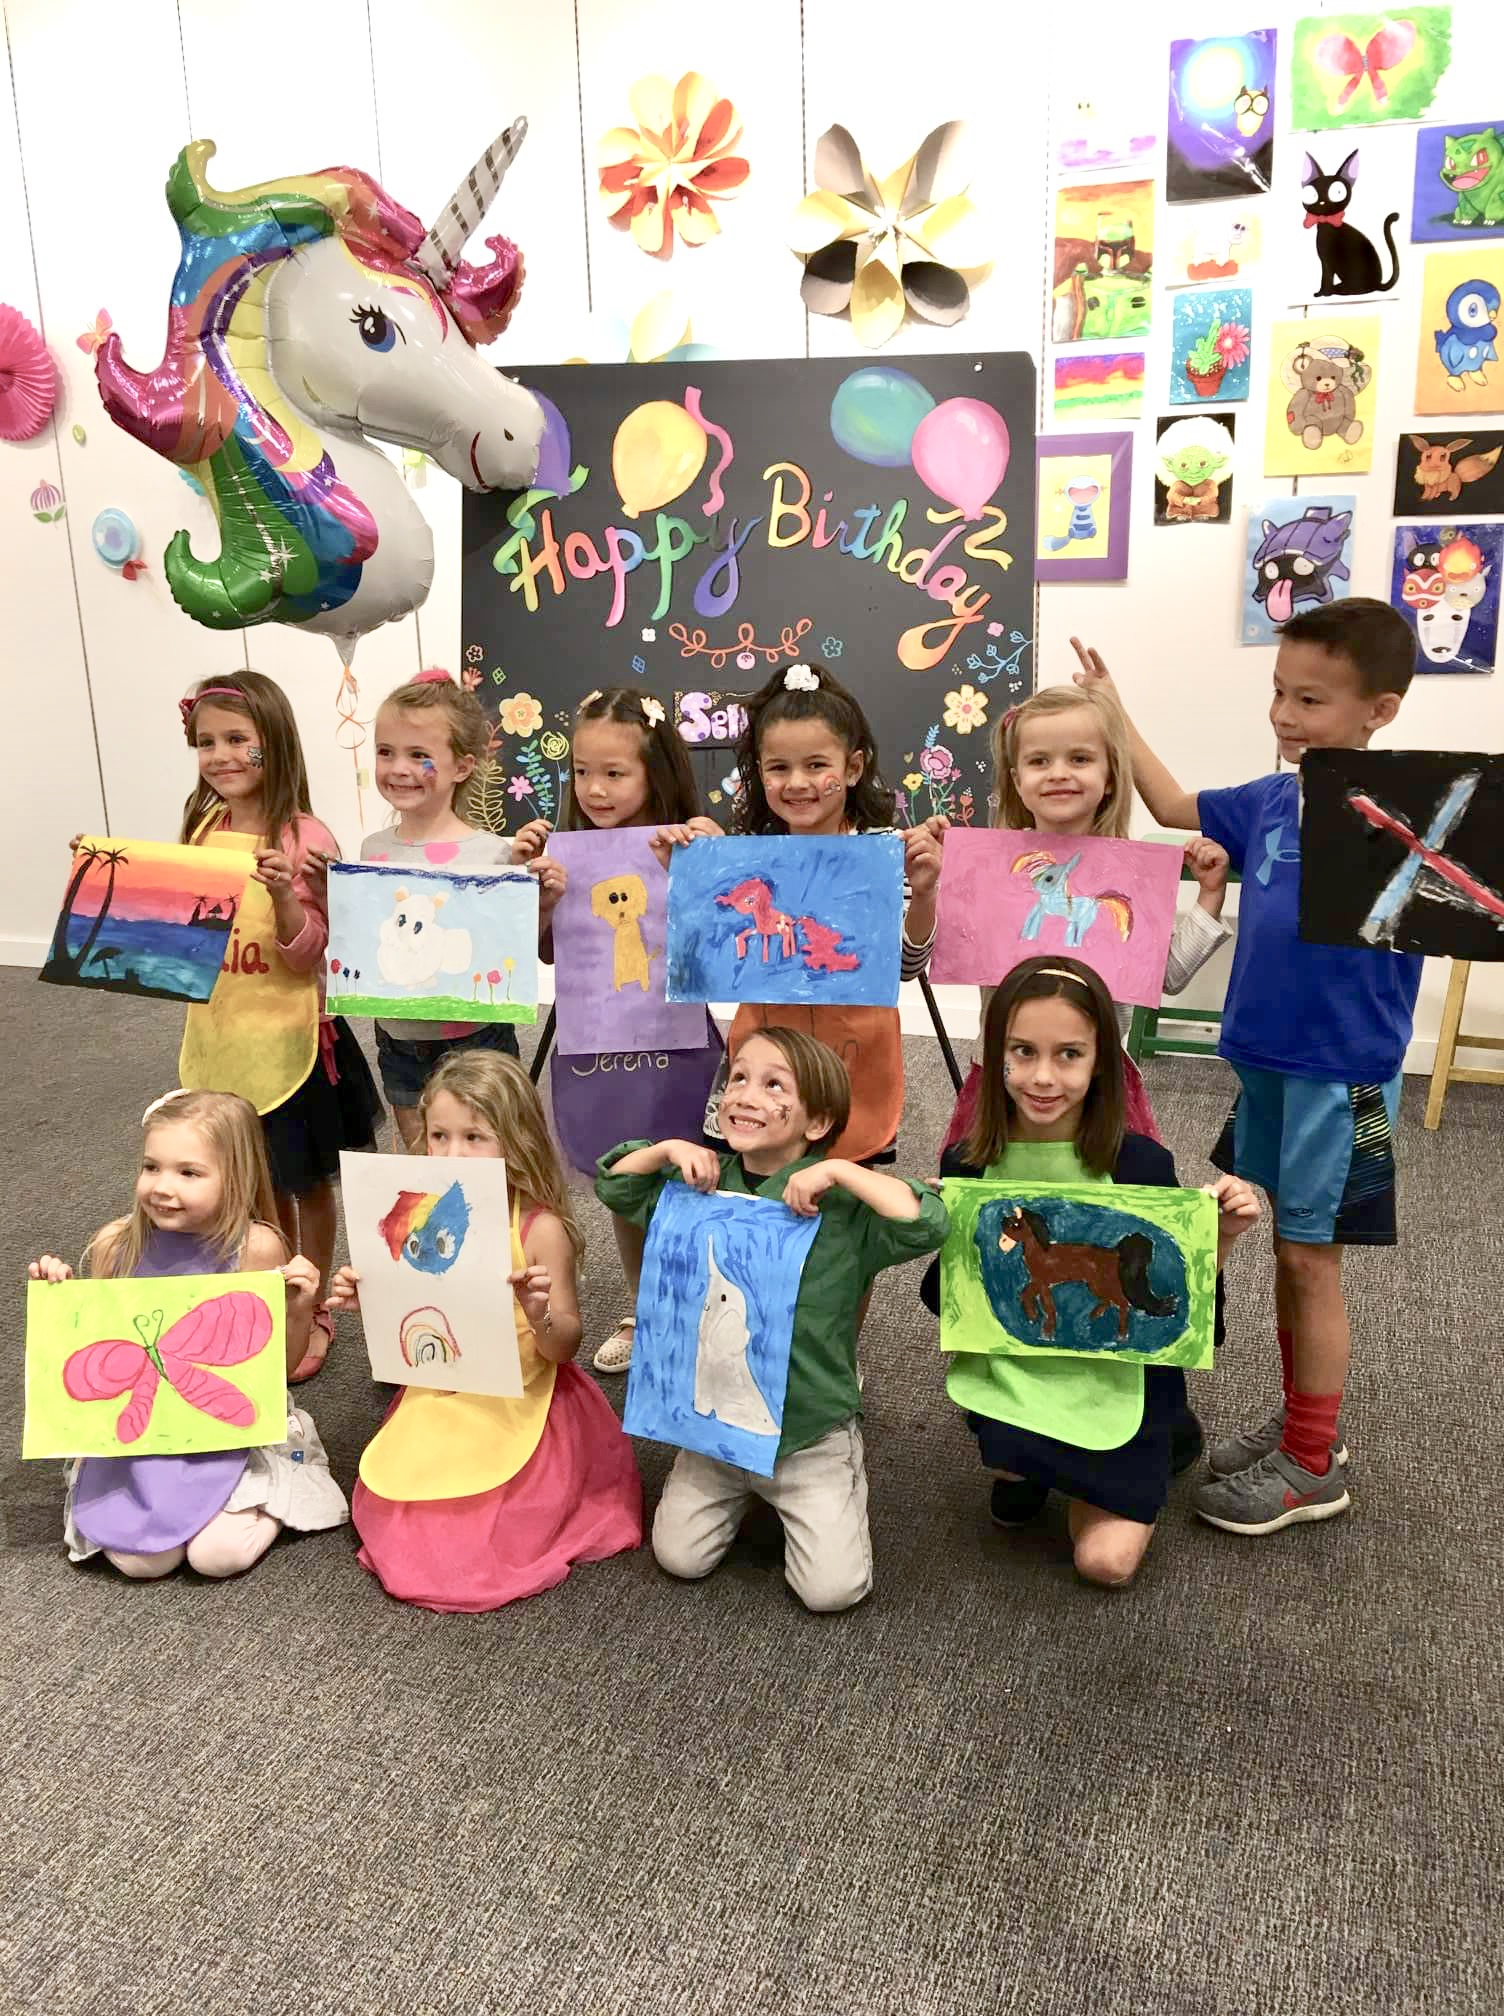 Kids holding their paintings